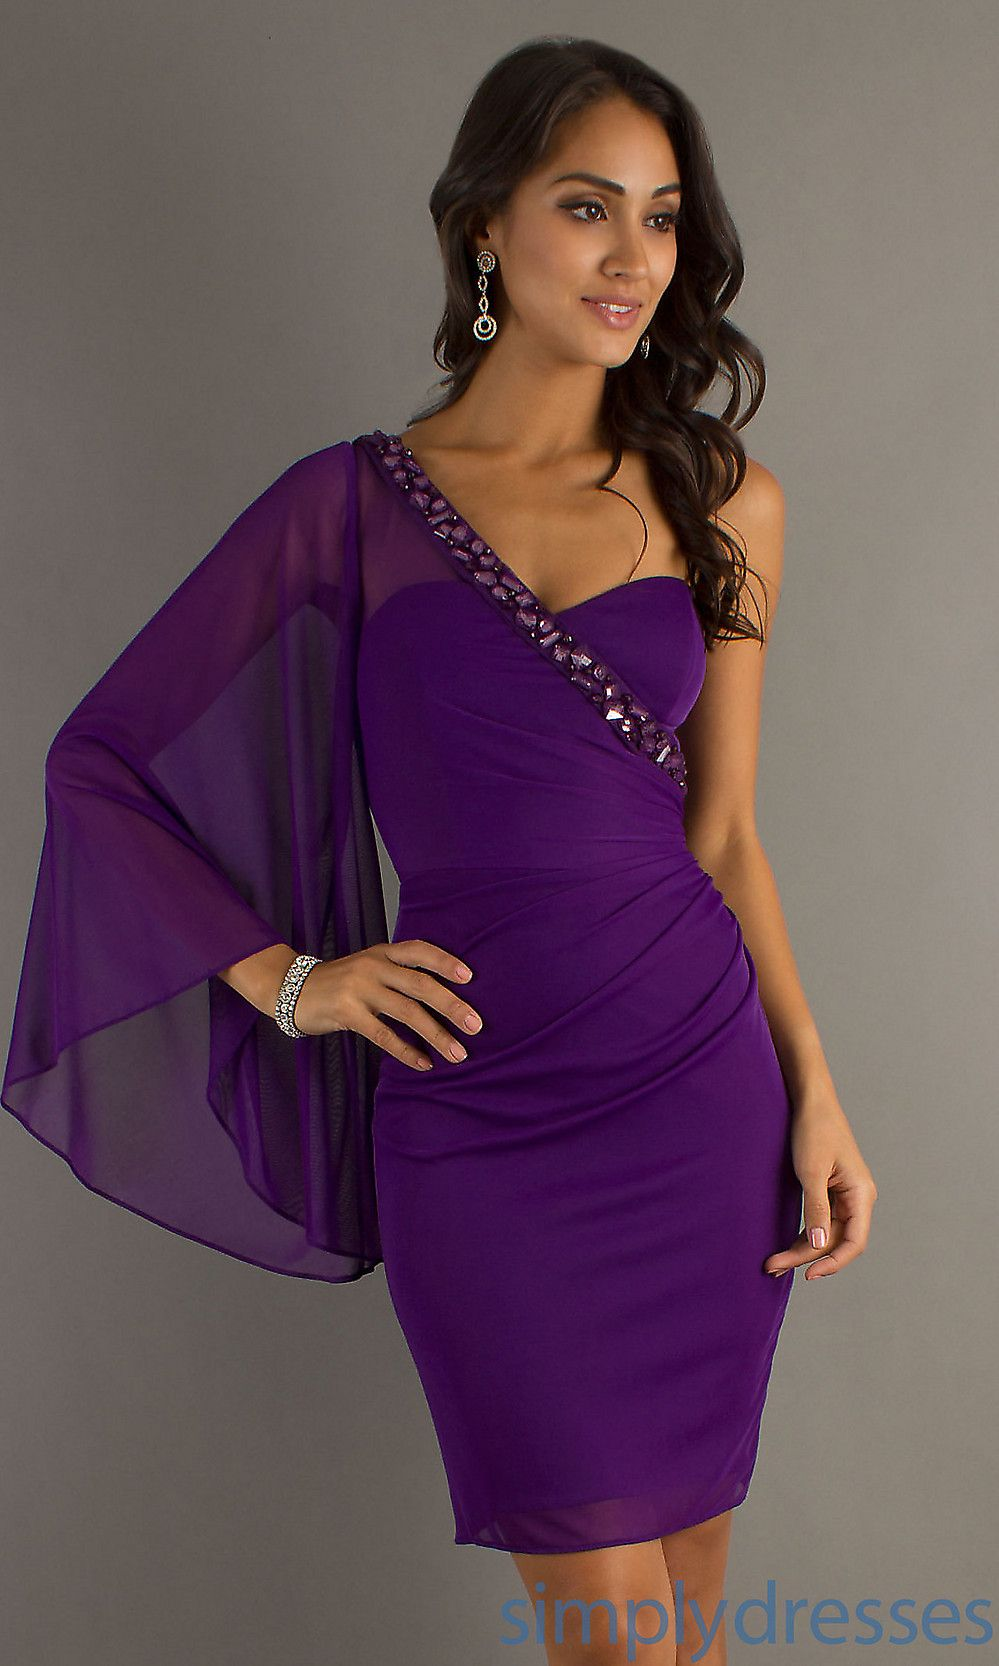 purple cocktail dresses for weddings | Short one shoulder dress ...